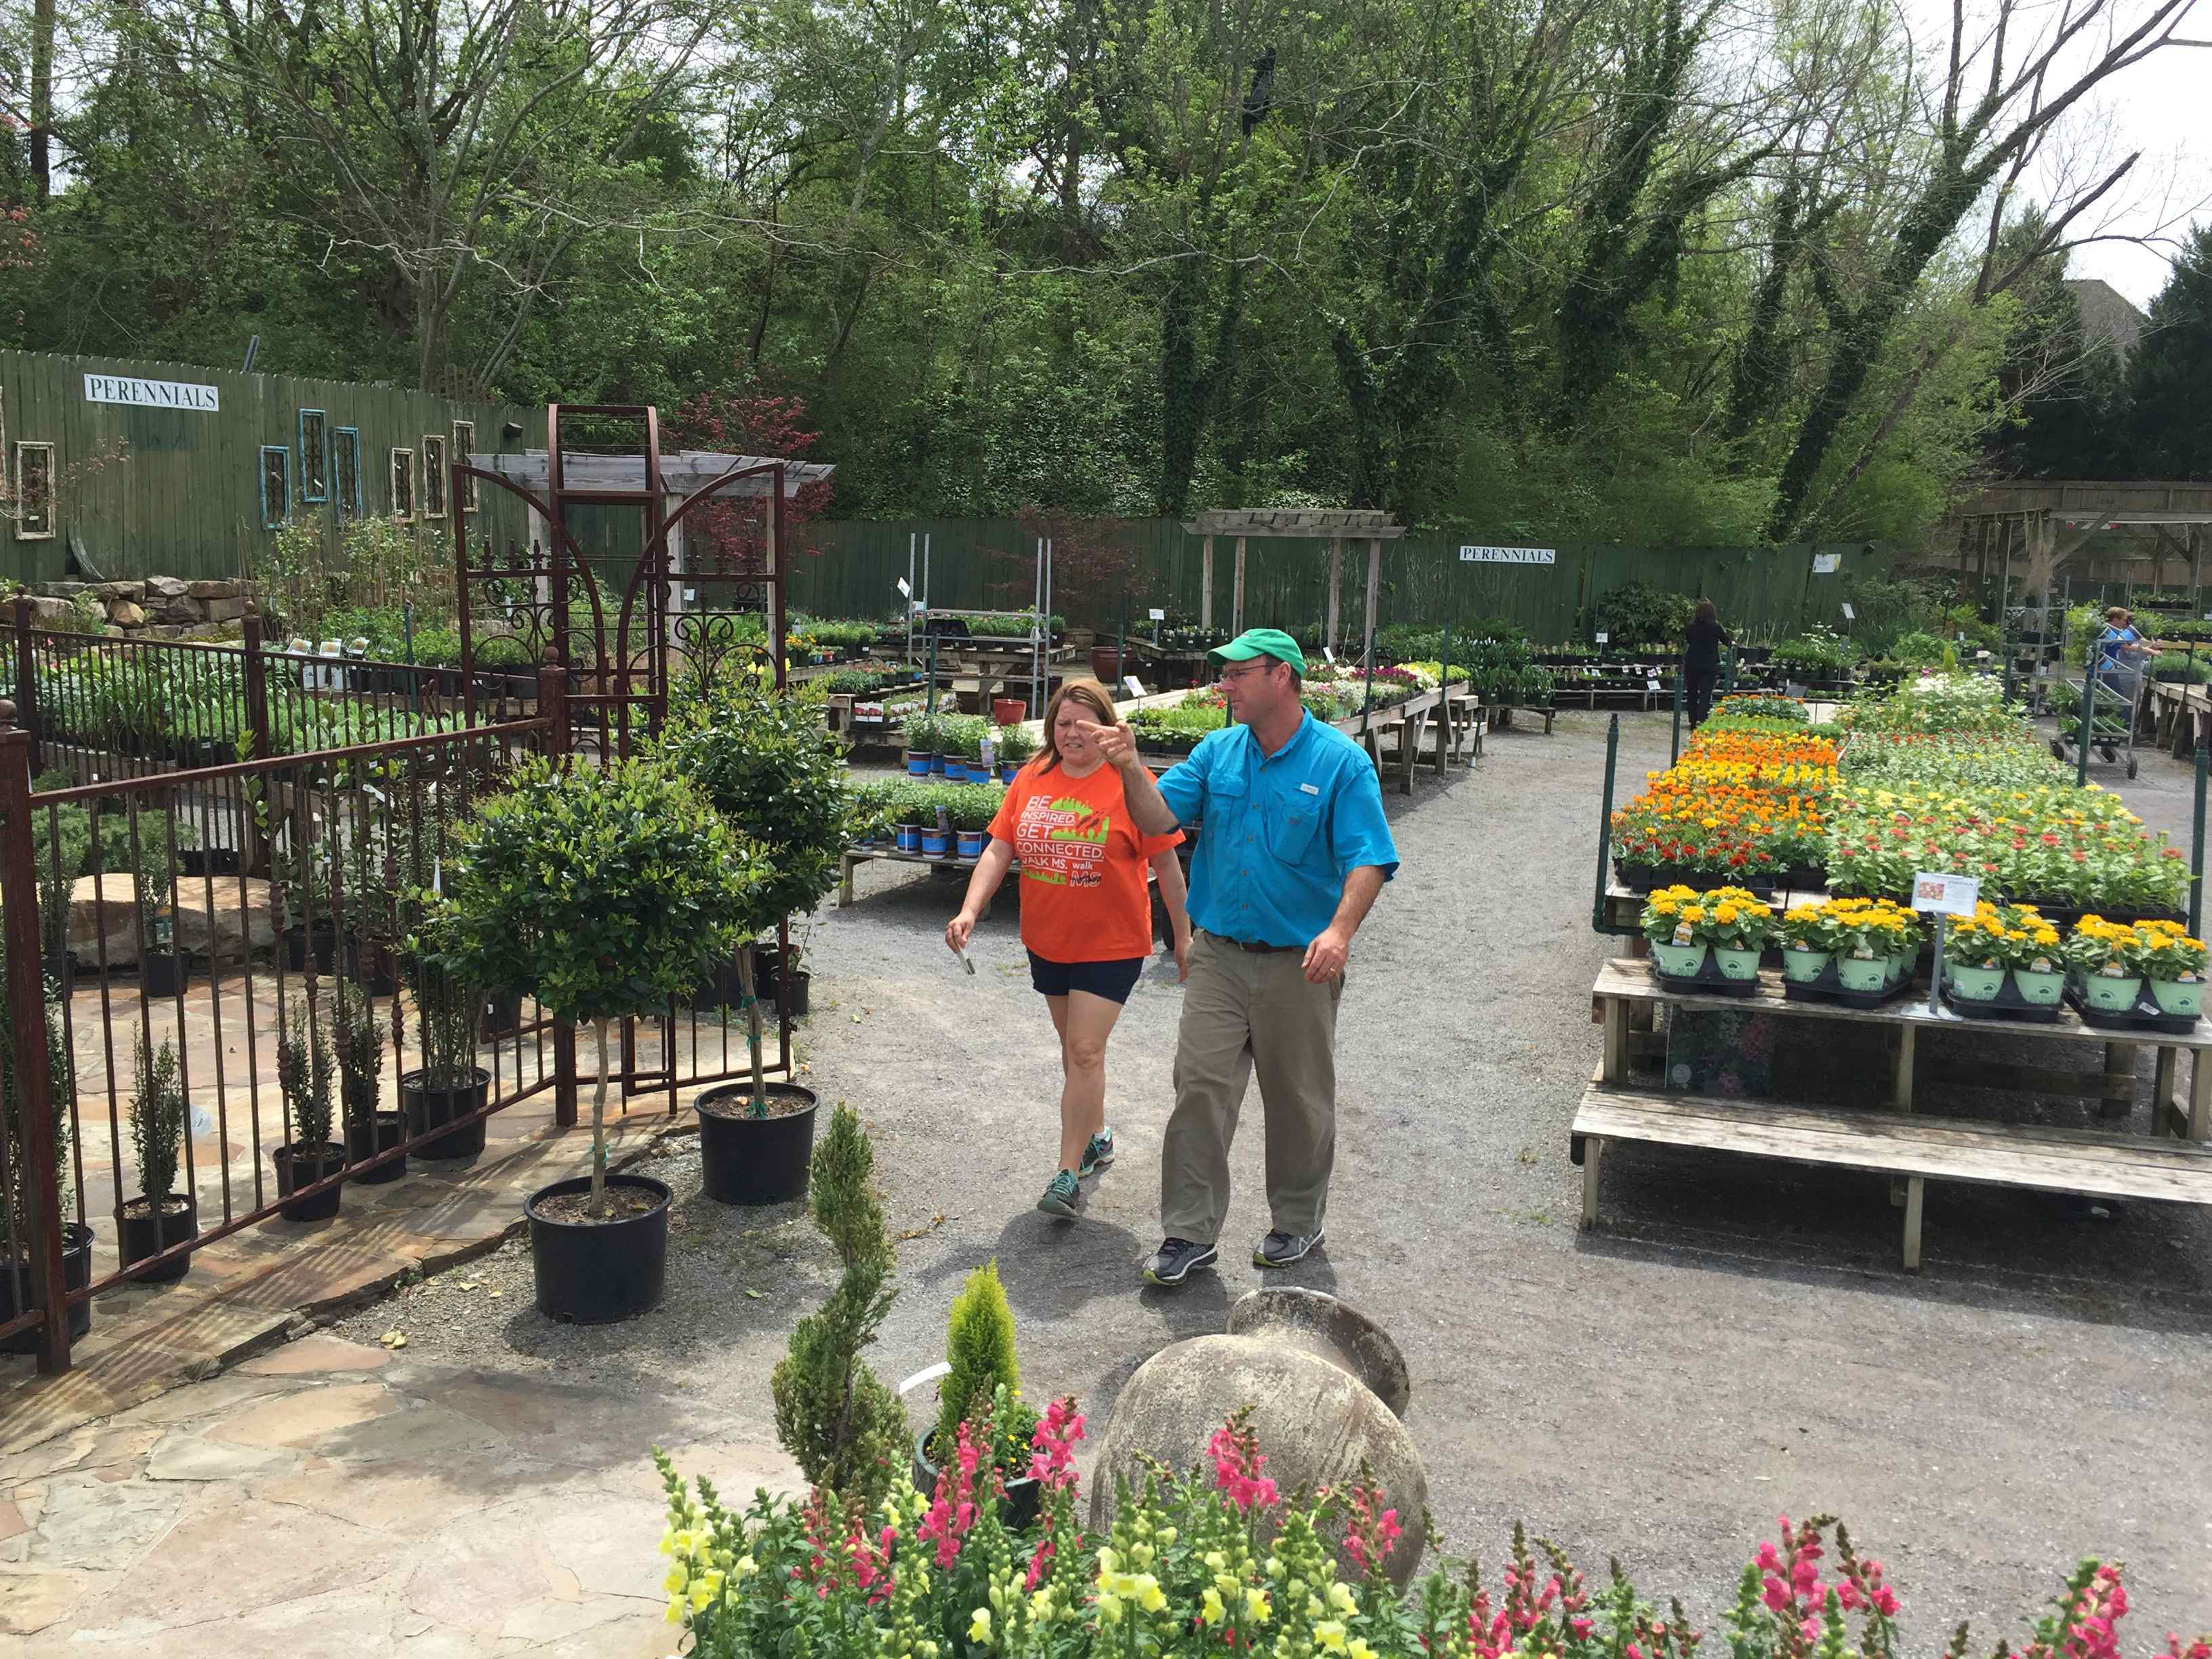 Birmingham garden center branches into landscaping company andys creekside nursery workwithnaturefo